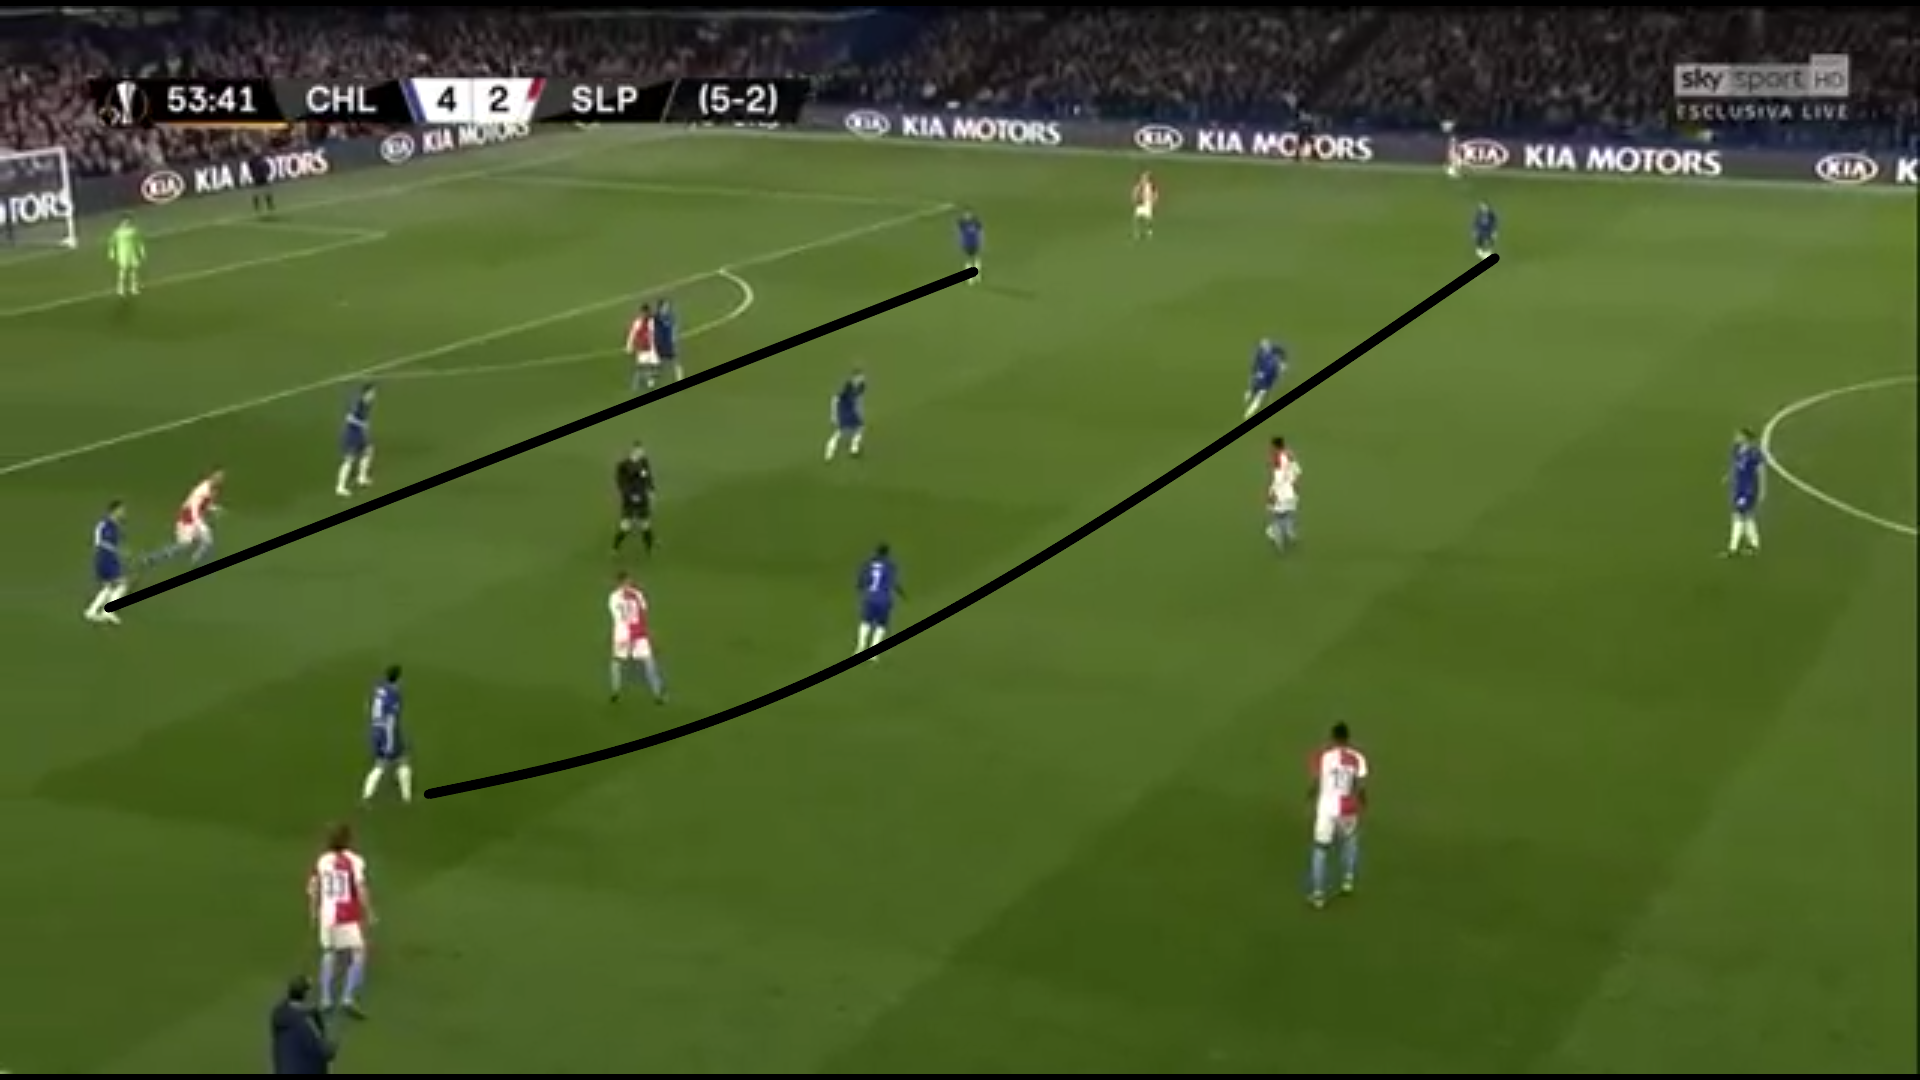 Chelsea Slavia Europa League 2018/19 tactical analysis